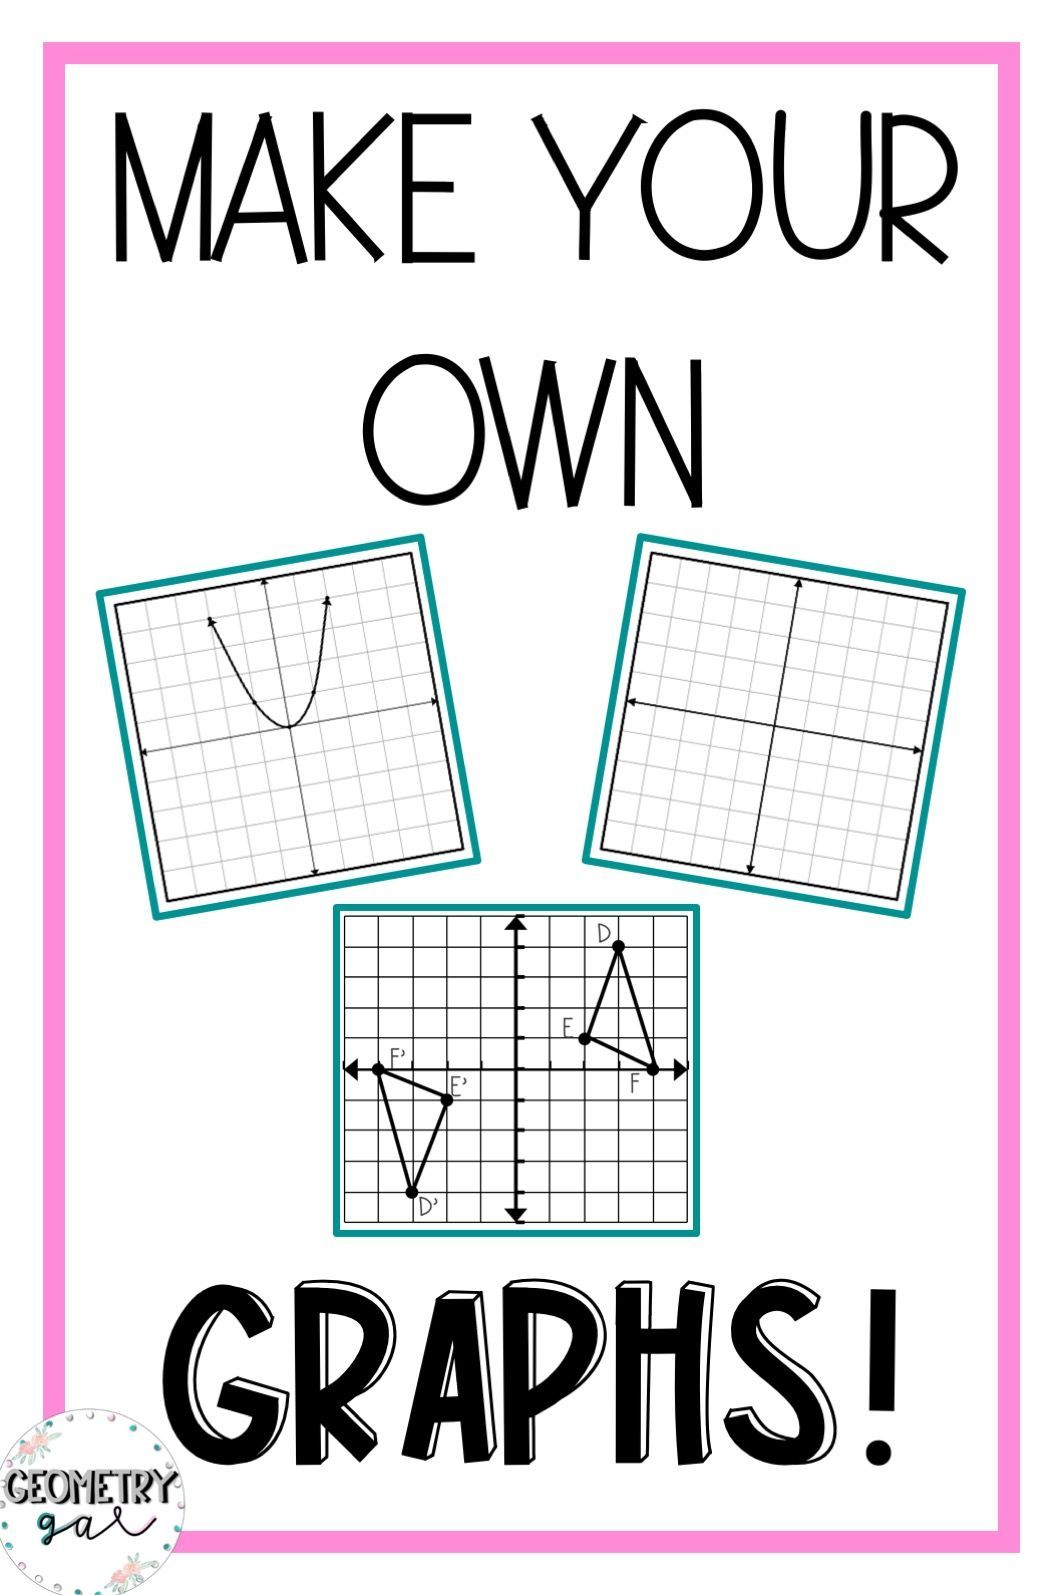 How To Make Your Own Graphs Using Powerpoint Lindsay Bowden Make Your Own Graph Graphing Math Resources